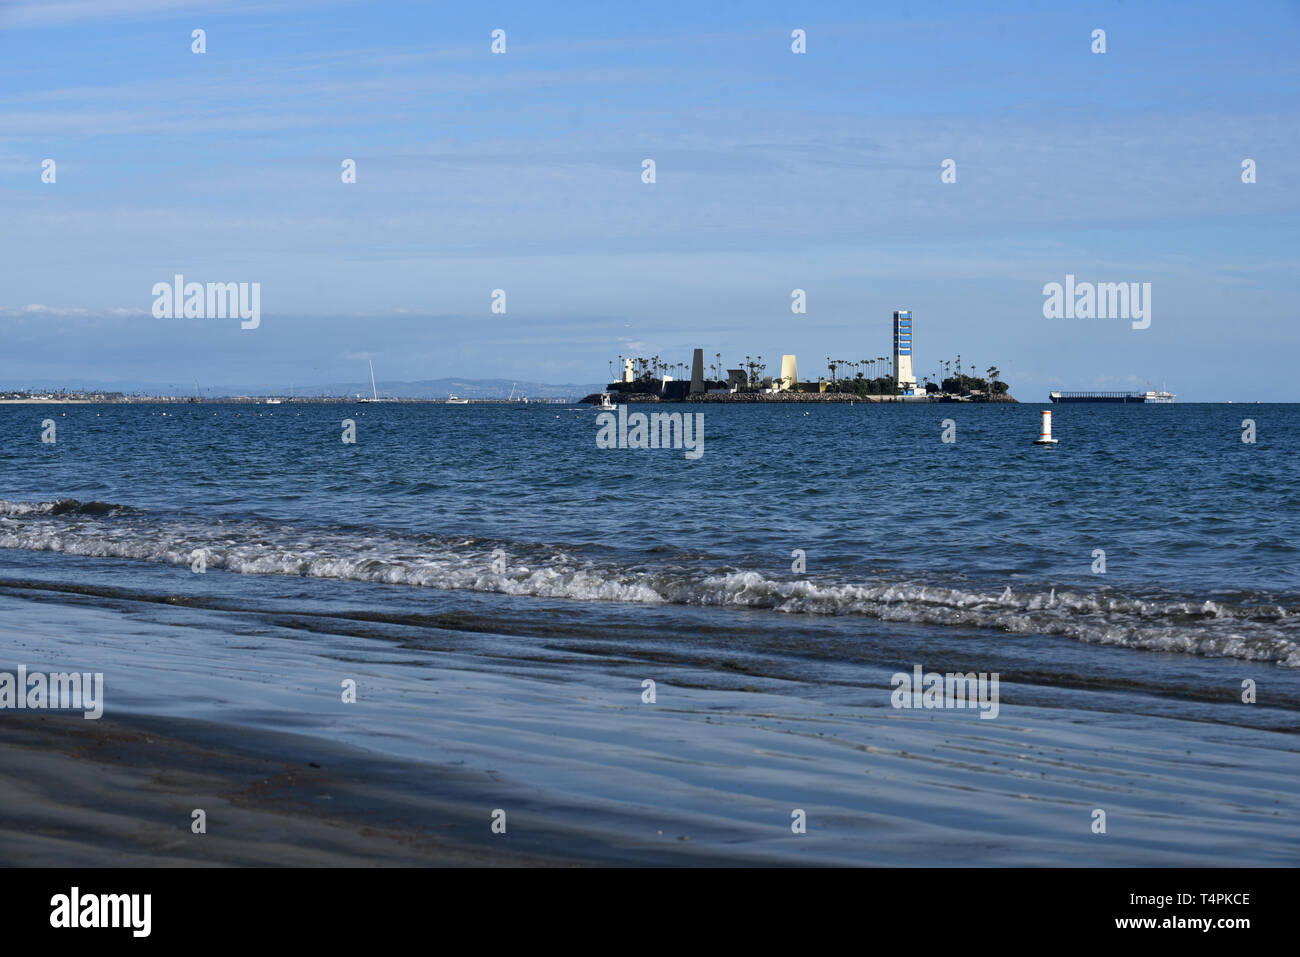 Water coming to shore and the sand is noticably dirty on Alamitos beach from offshore oil drilling - Stock Image